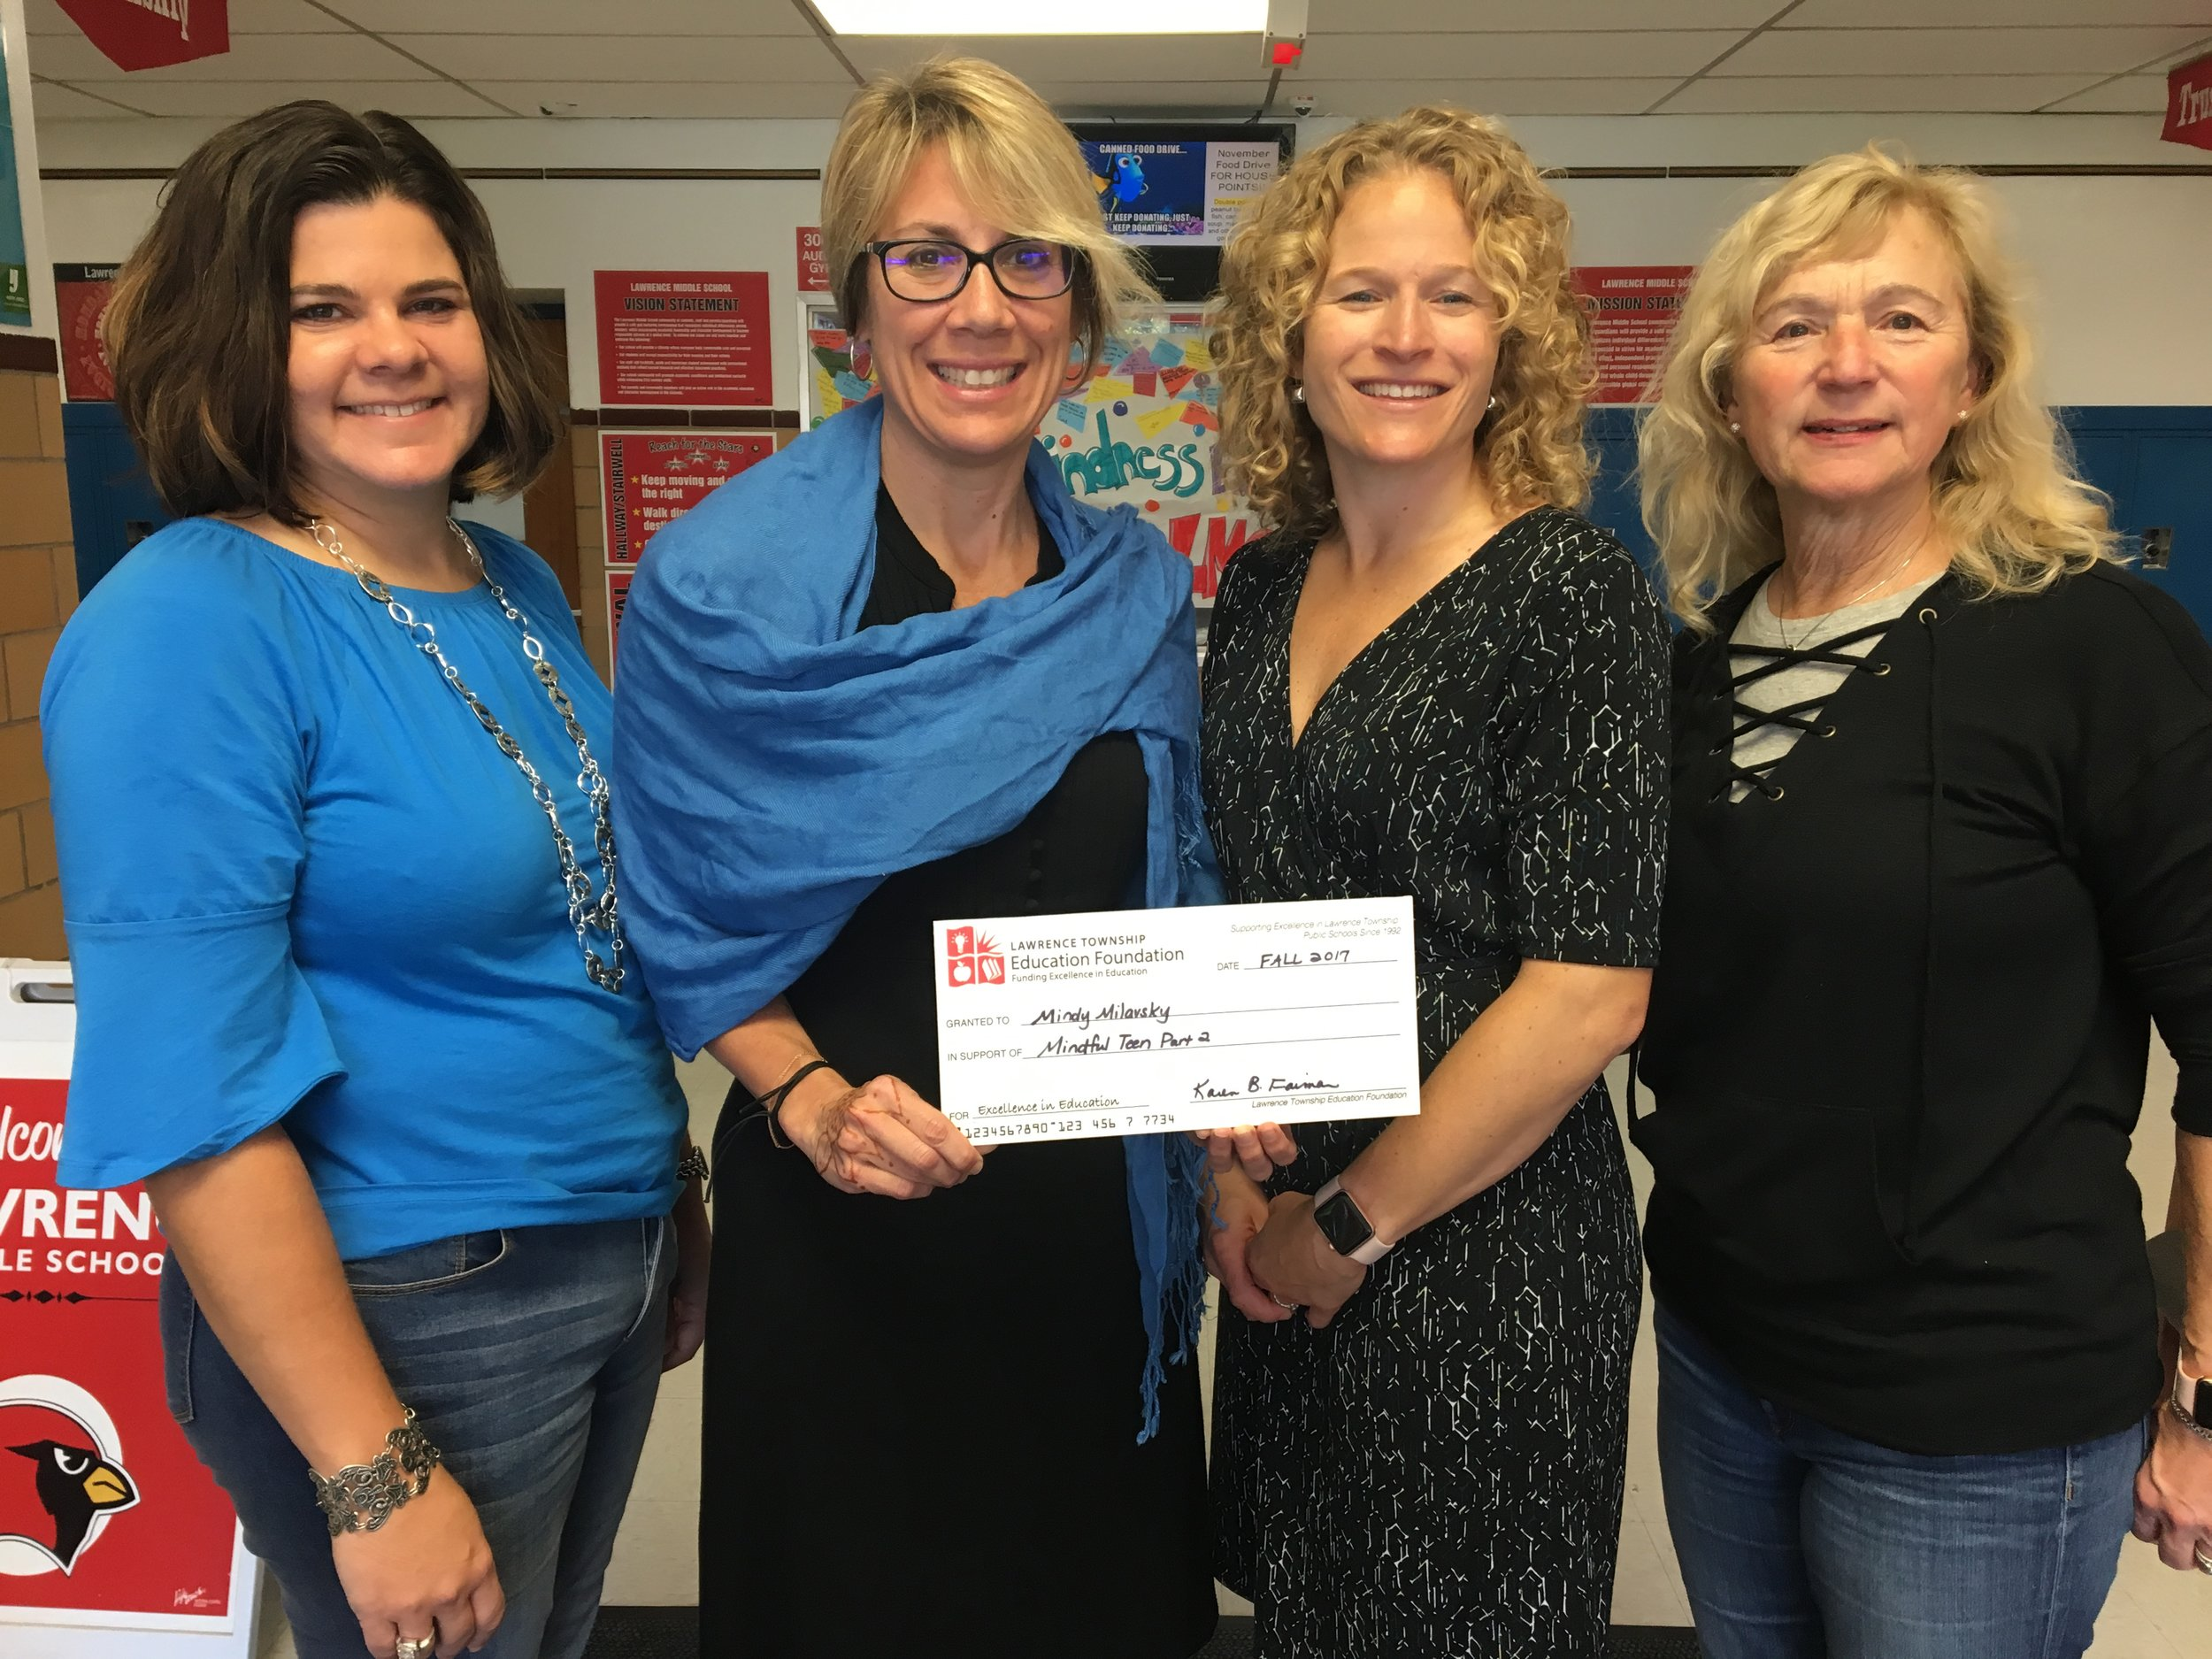 From left to Right: Amy Davis, LTEF Board President; Mindy Milavsky, LMS Principal; Karen Faiman, LTEF Executive Director; JoAnn Groeger, LTPS Board of Education.